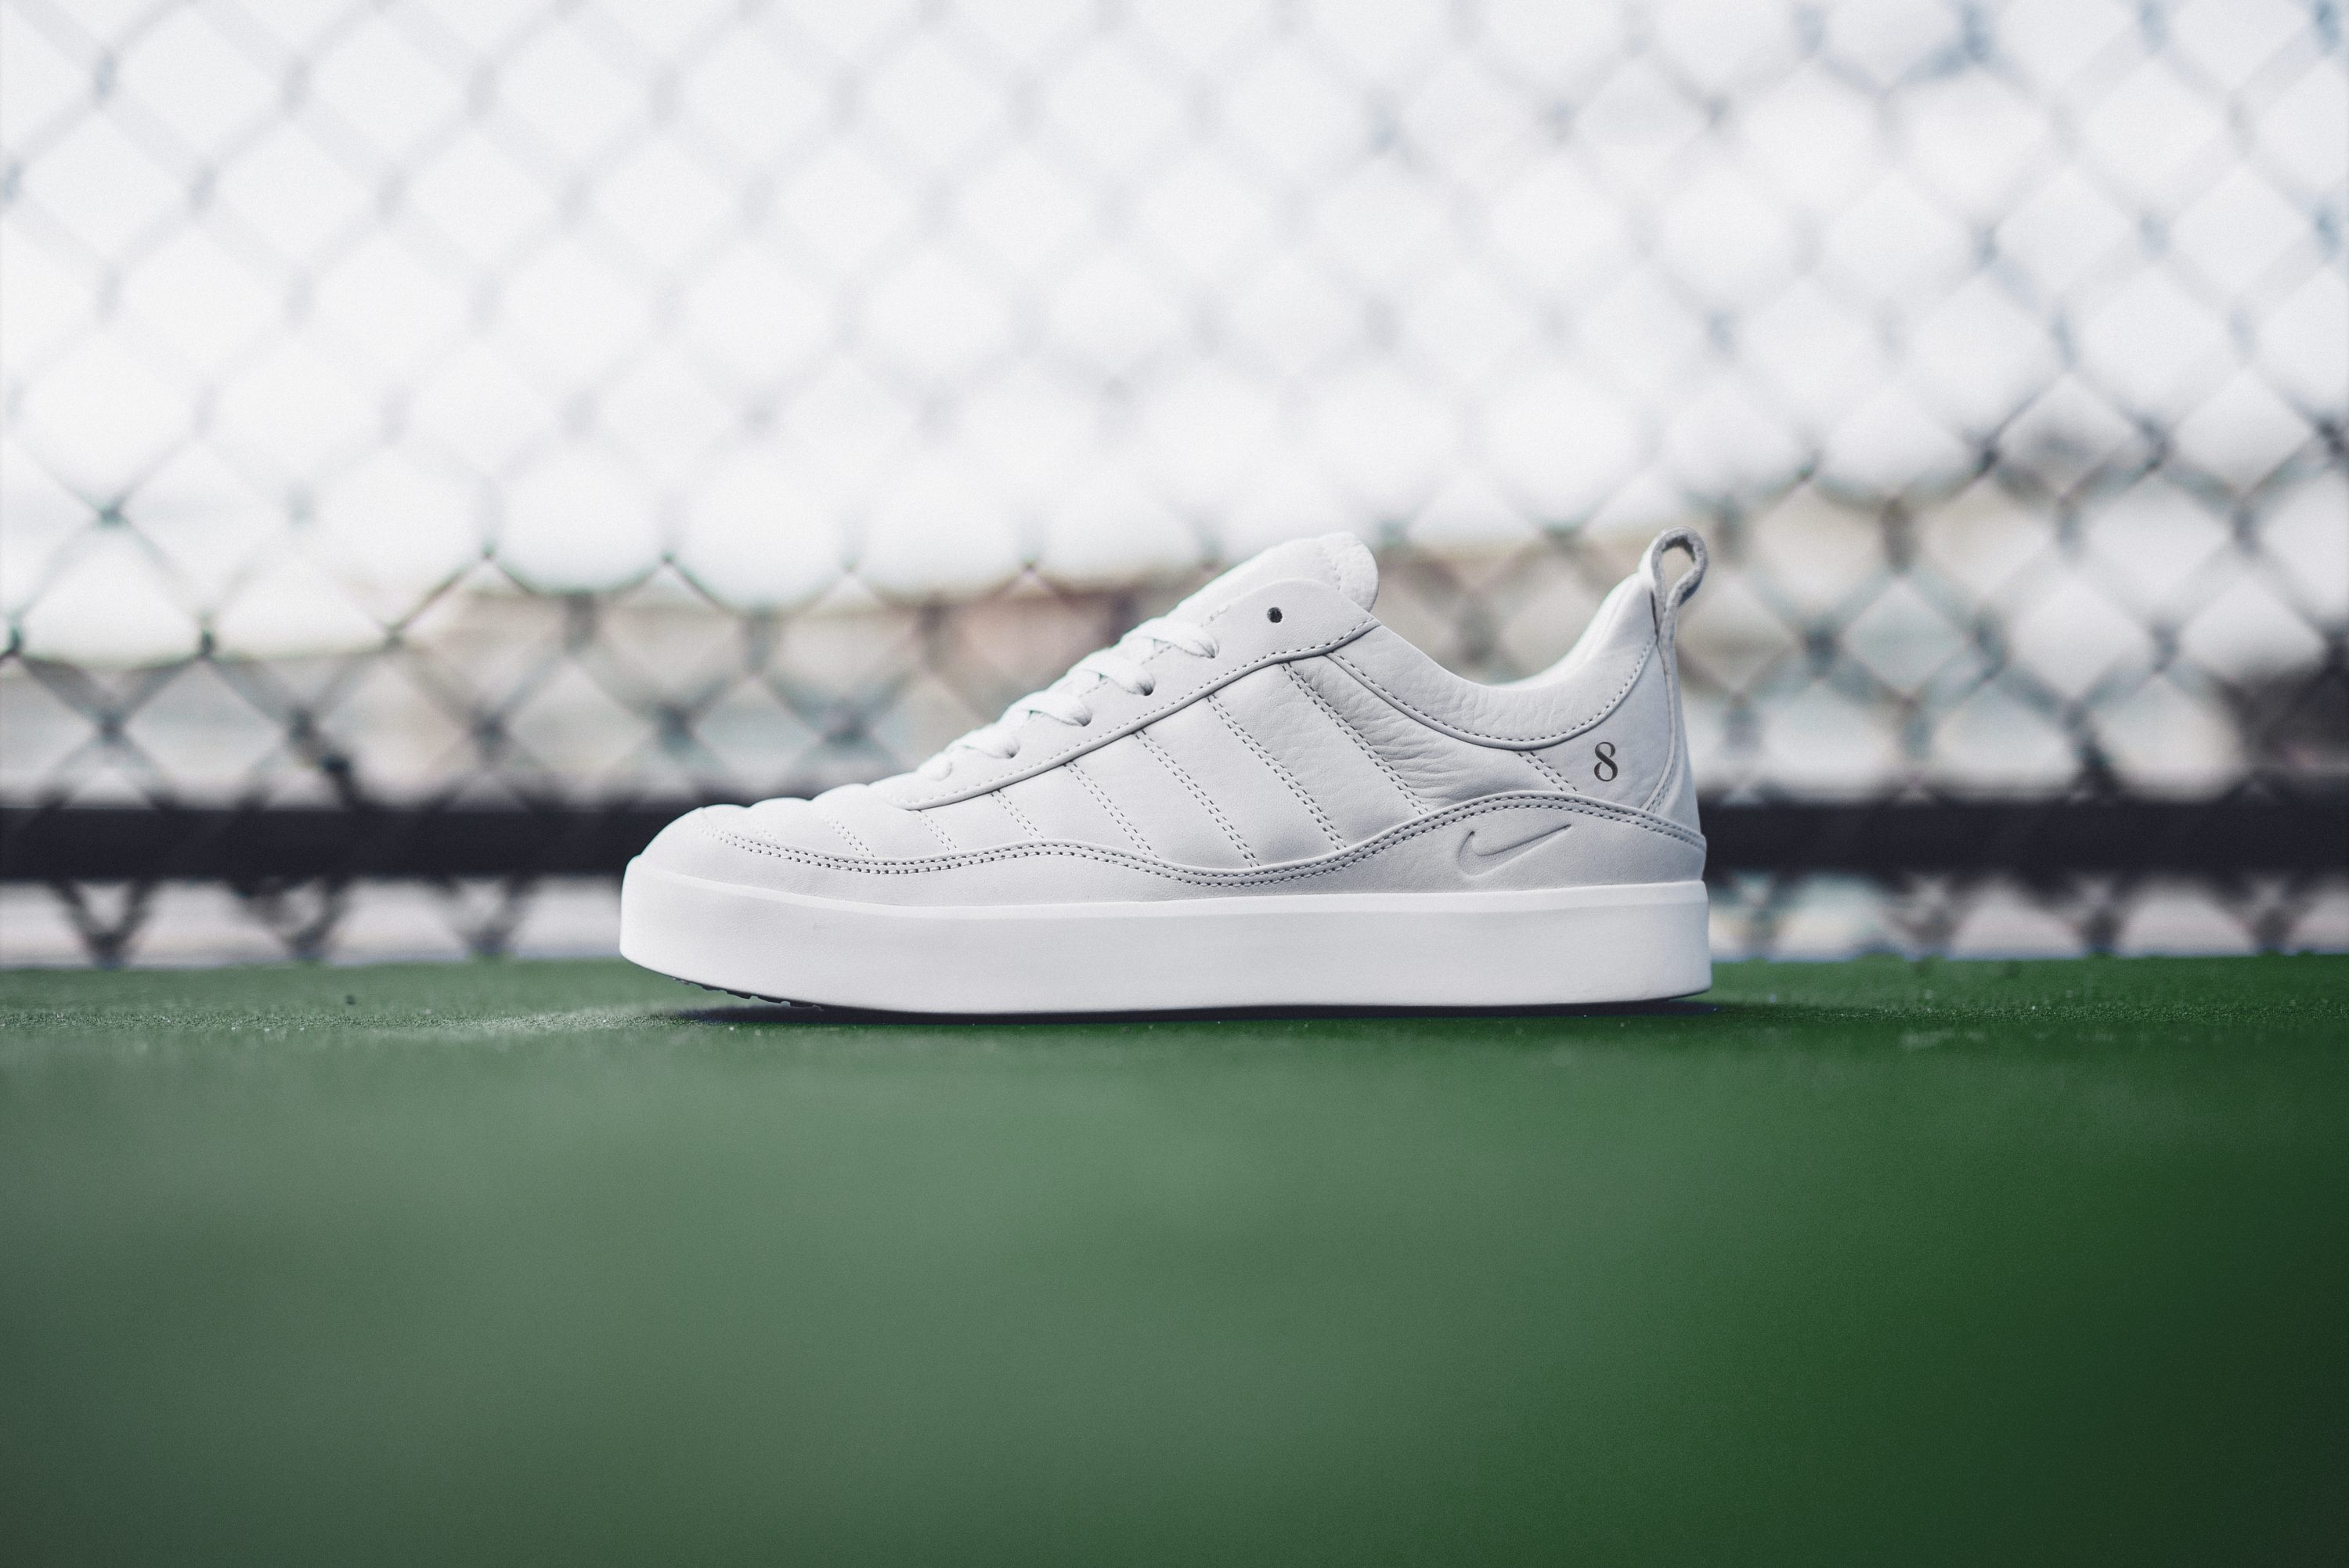 afac294b2b43fe ... NIKELAB Oscillate Evolve RF shoes (the style pays homage to 1997 s  Tinker Hatfield-designed Nike Air Oscillate